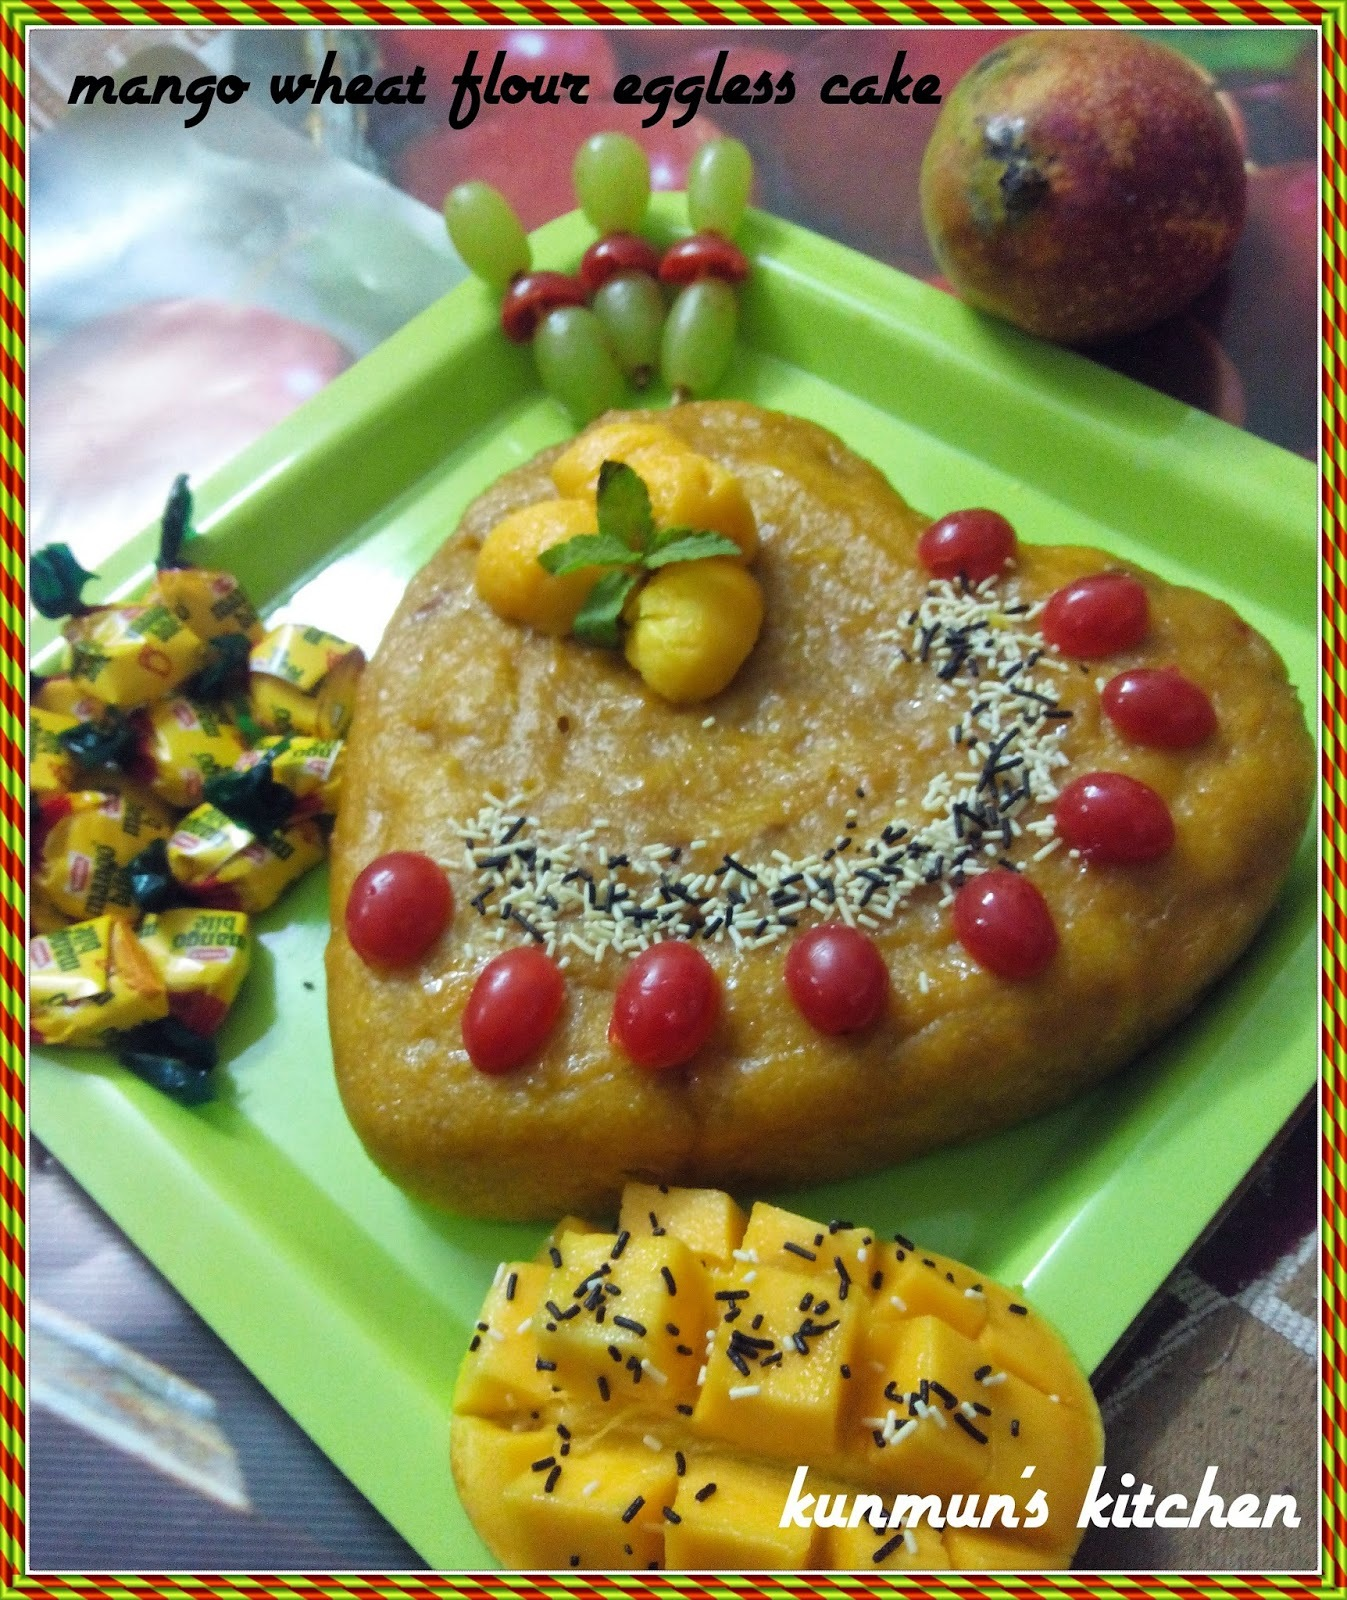 Mango Wheatflour Egg Less Cake